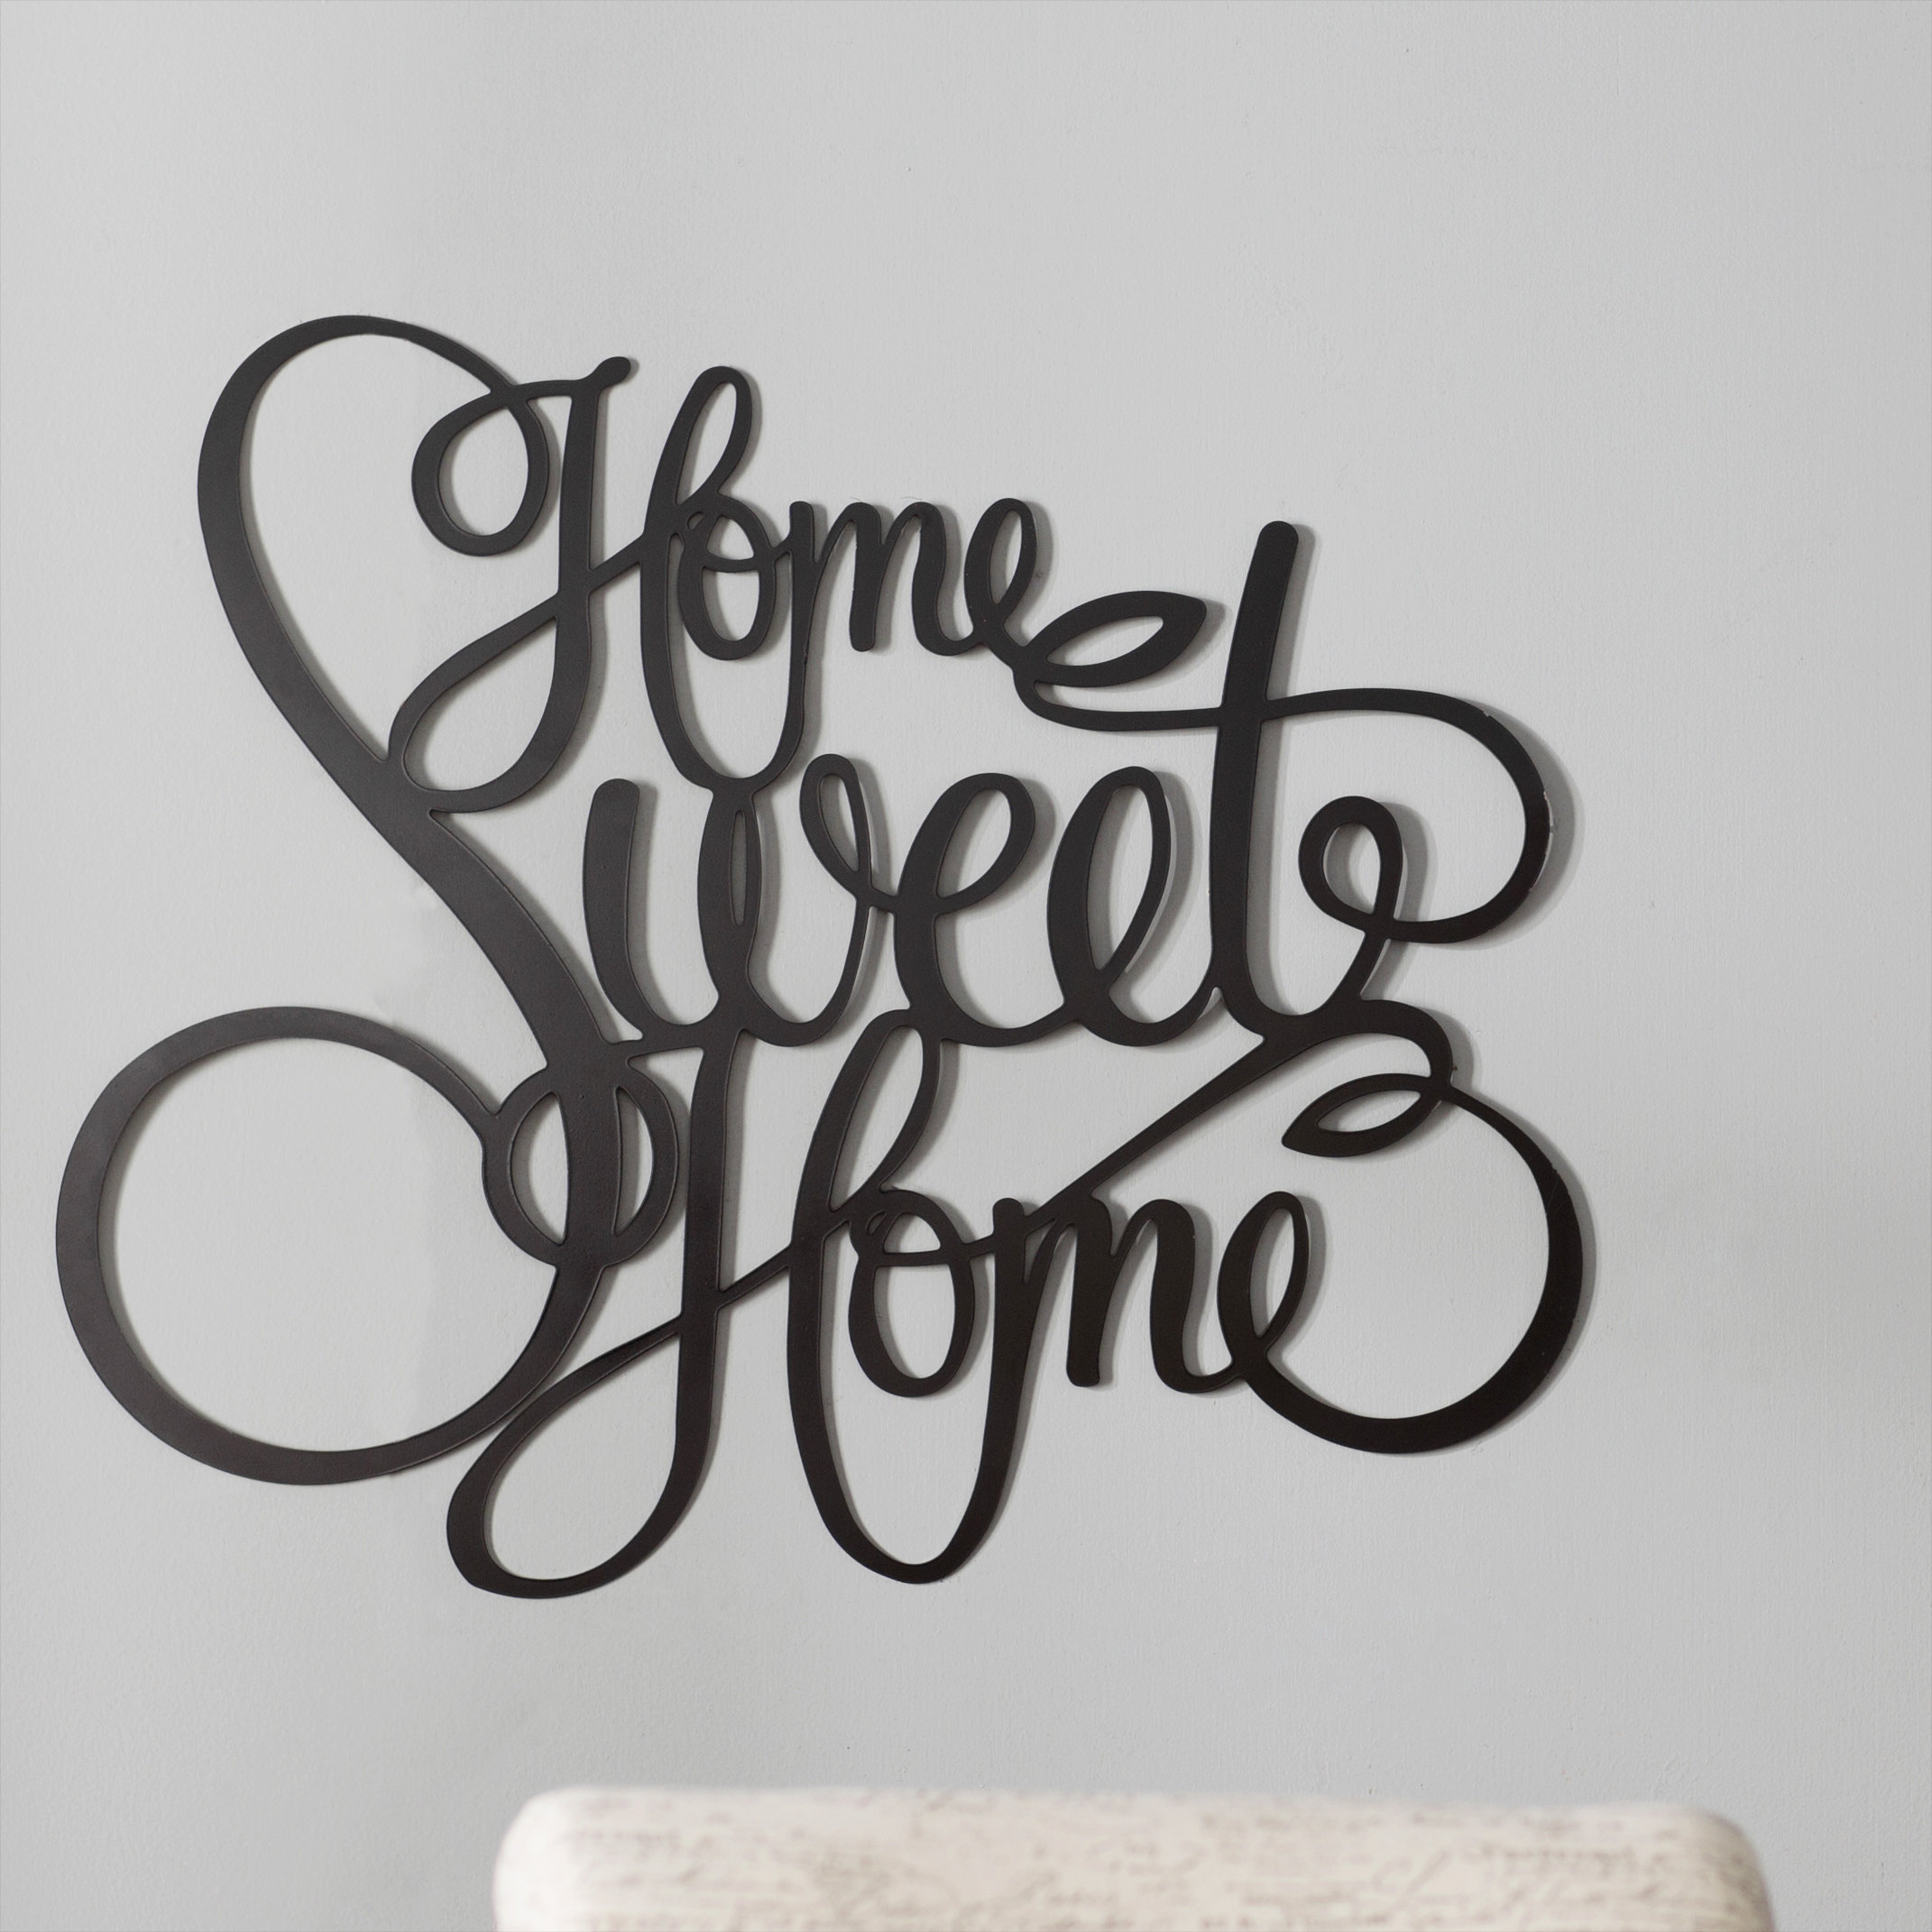 Laser Engraved Home Sweet Home Wall Decor regarding Most Popular Red Barrel Studio Laser Engraved Home Sweet Home Wall Décor